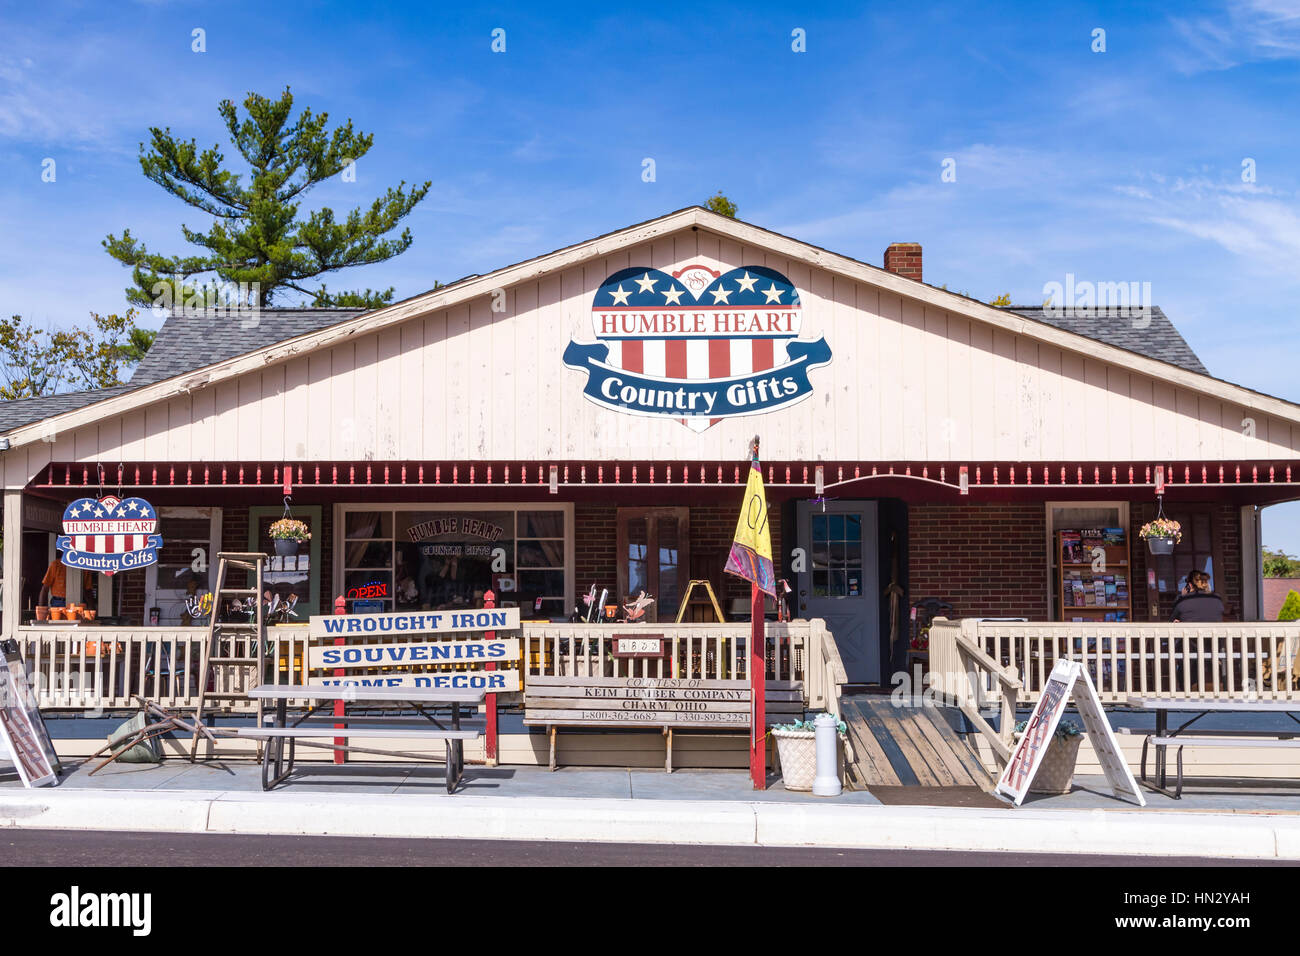 The Hungry Heart Country gifts shop in Berlin, Ohio, USA. - Stock Image